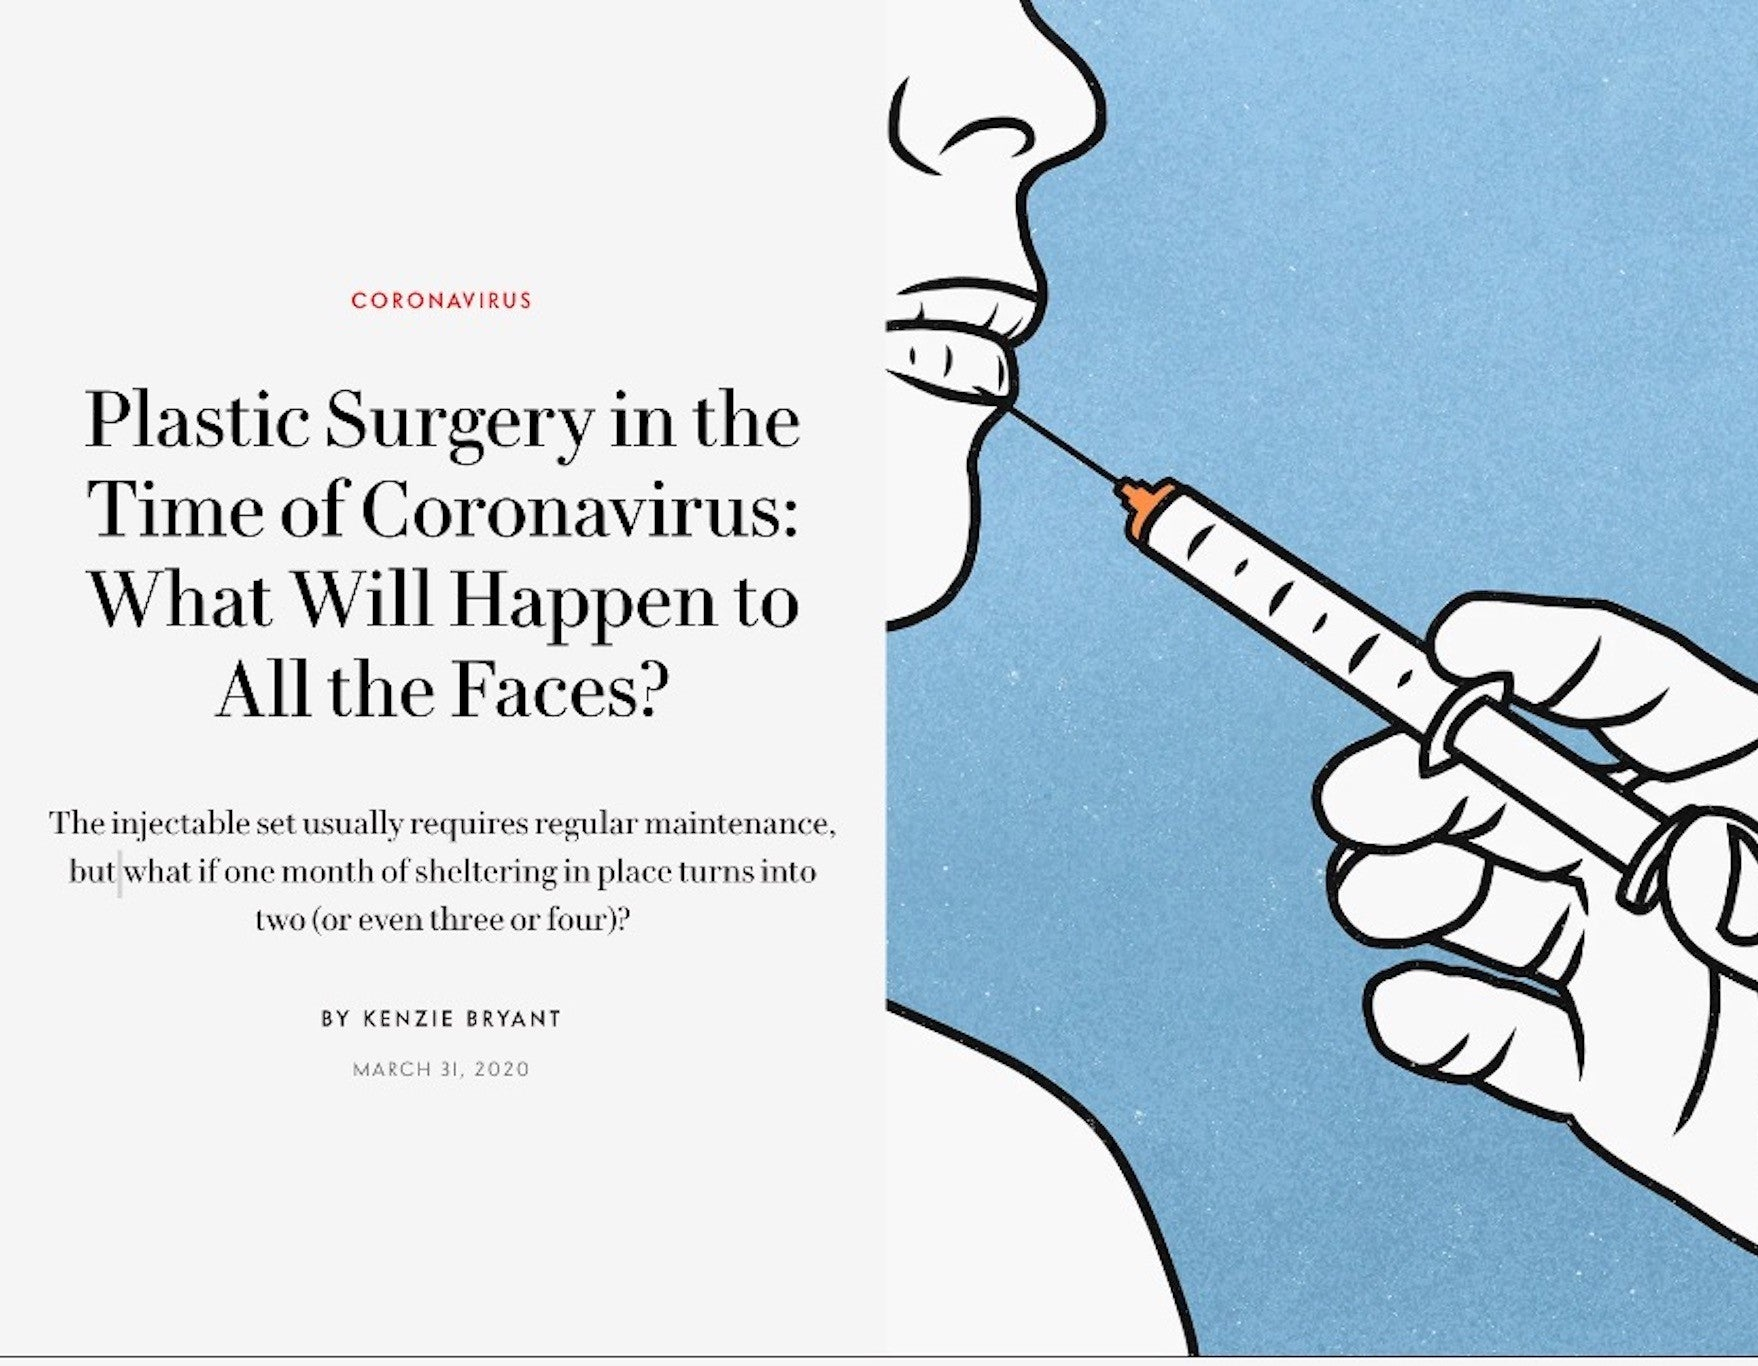 March 2020 - Vanity Fair: Plastic Surgery in the Time of Coronavirus: What Will Happen to All the Faces?